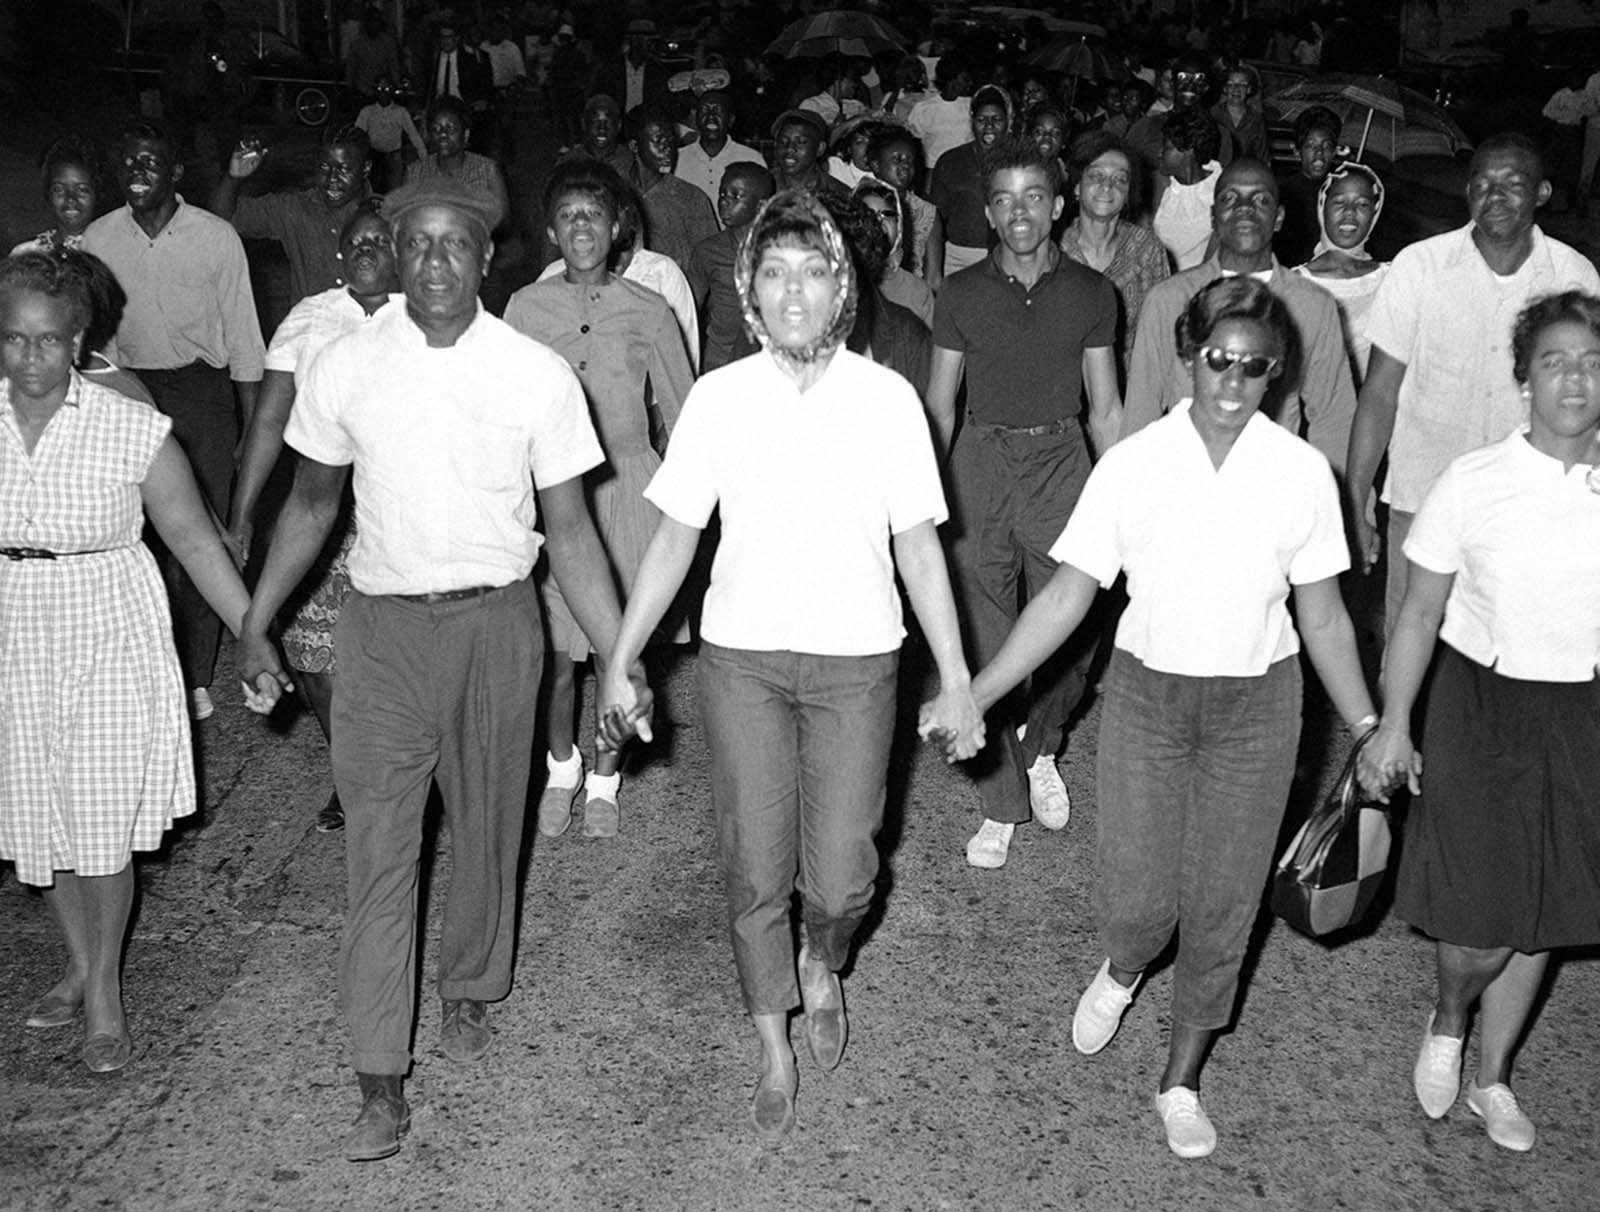 Civil rights marchers walk through the streets of downtown Cambridge, Maryland, on May 12, 1964. The National Guard were deployed to keep order after a violent confrontation the night before.